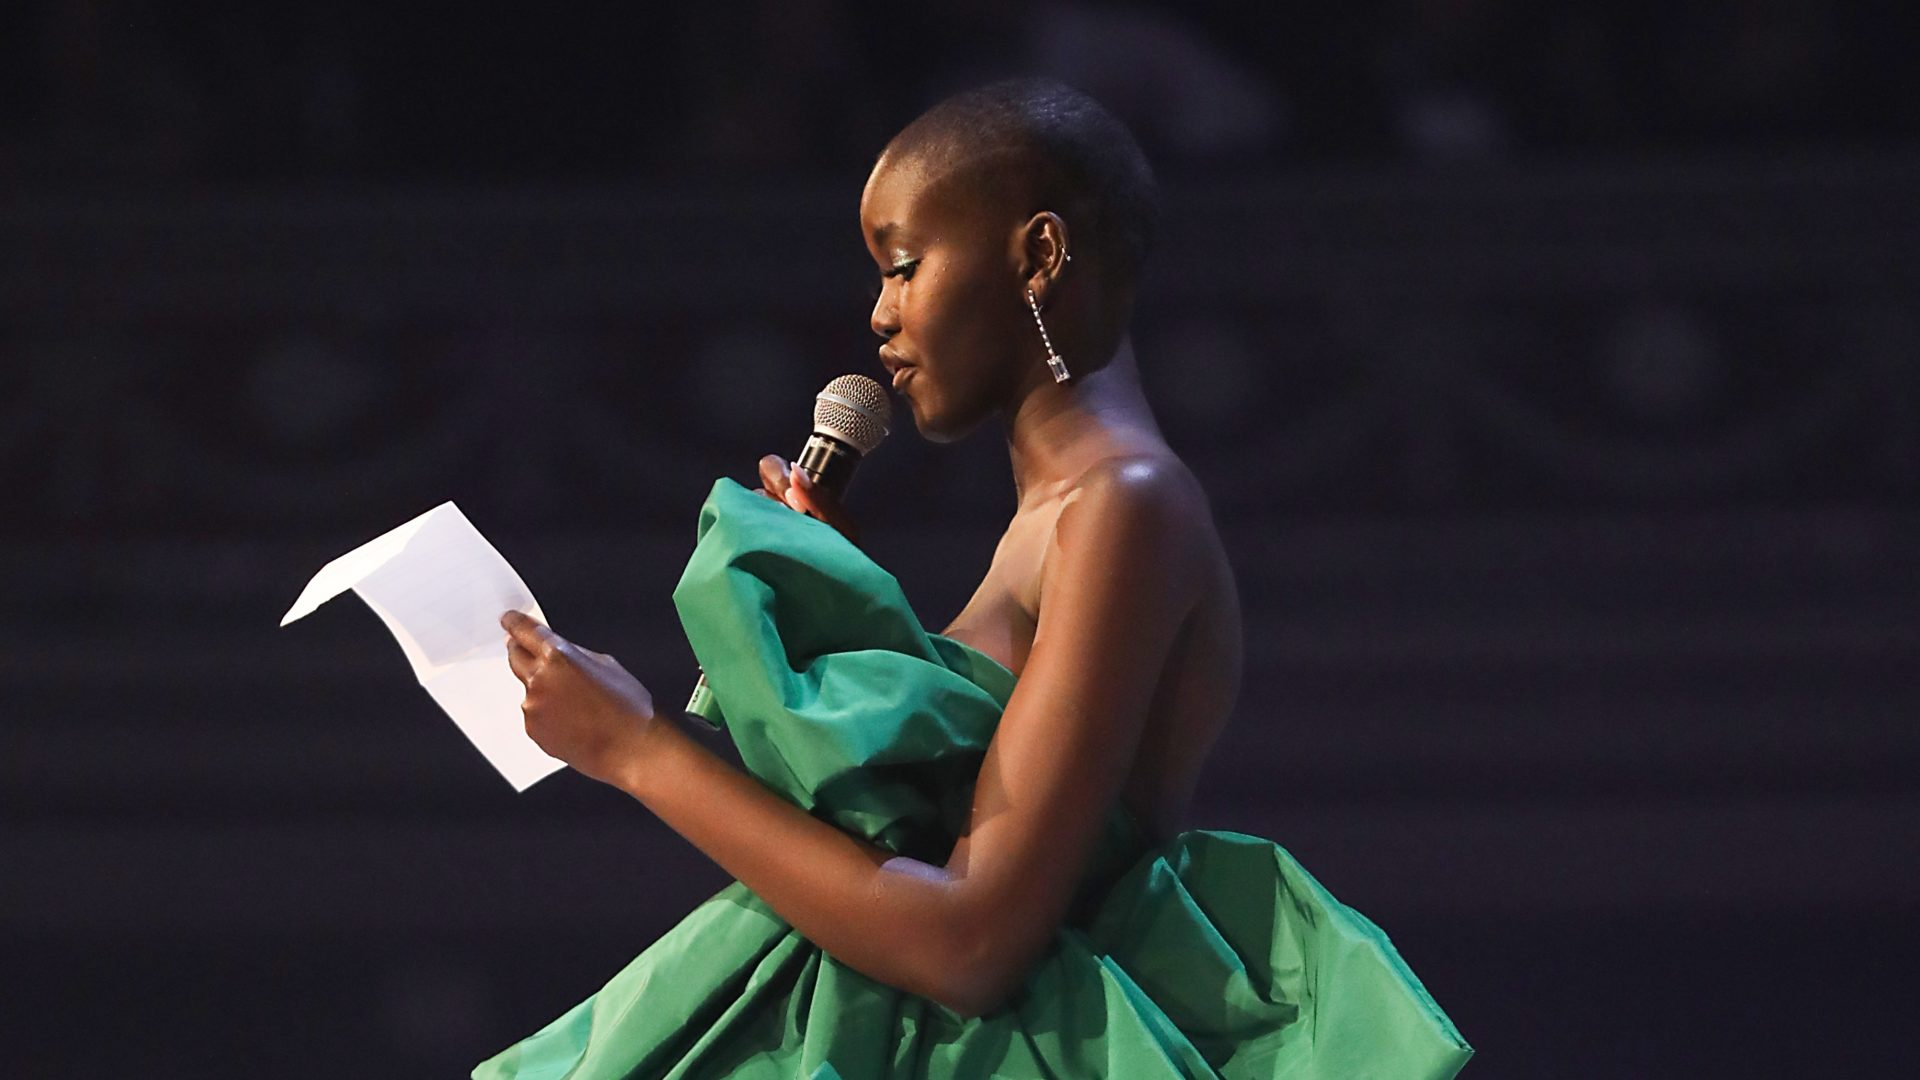 Adut Akech Wins Model Of The Year At Fashion Awards